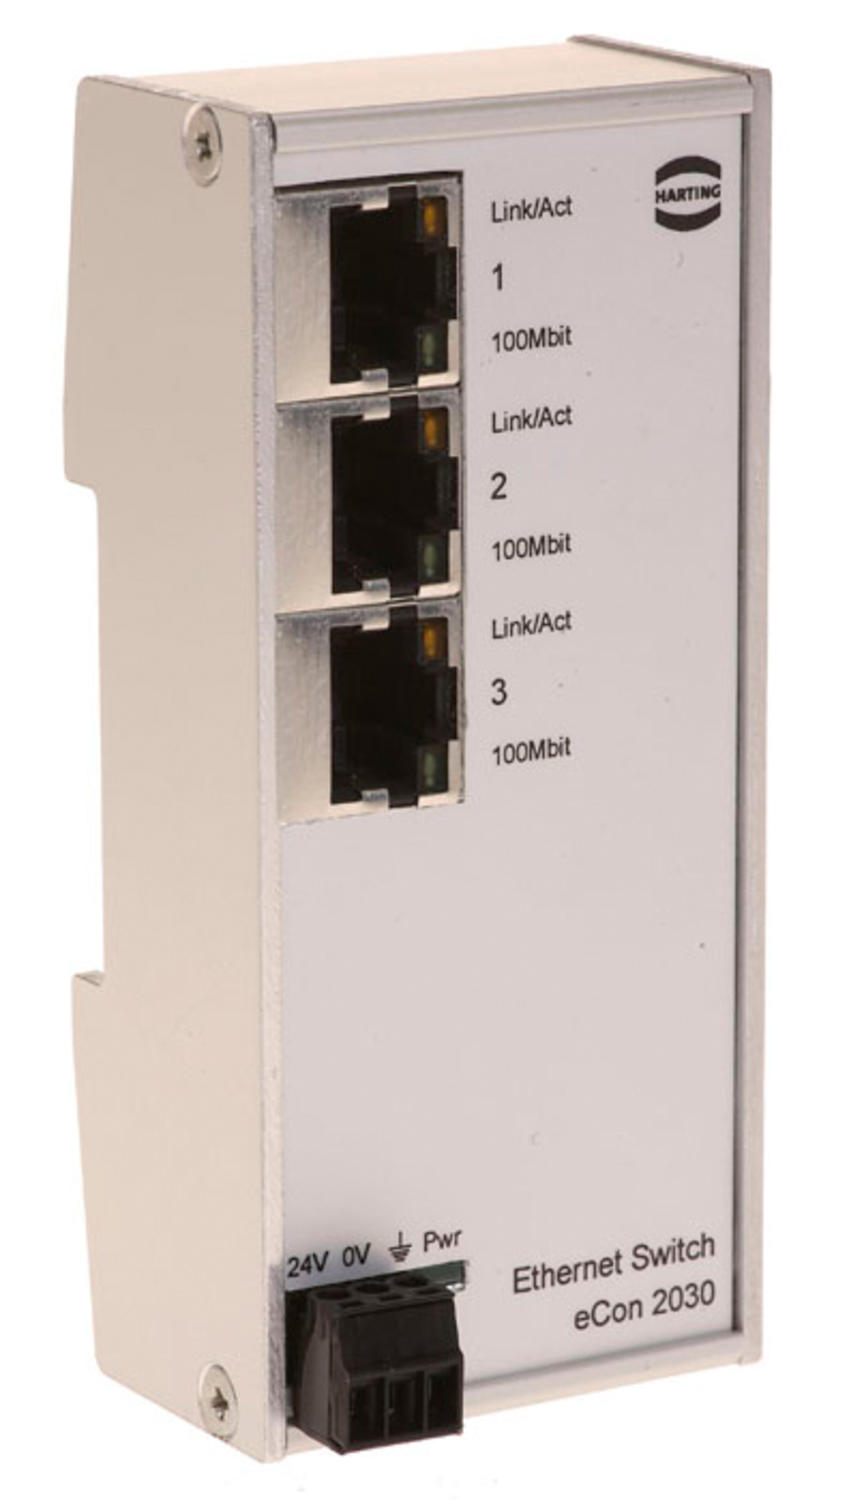 Ethernet switch eCon 2000